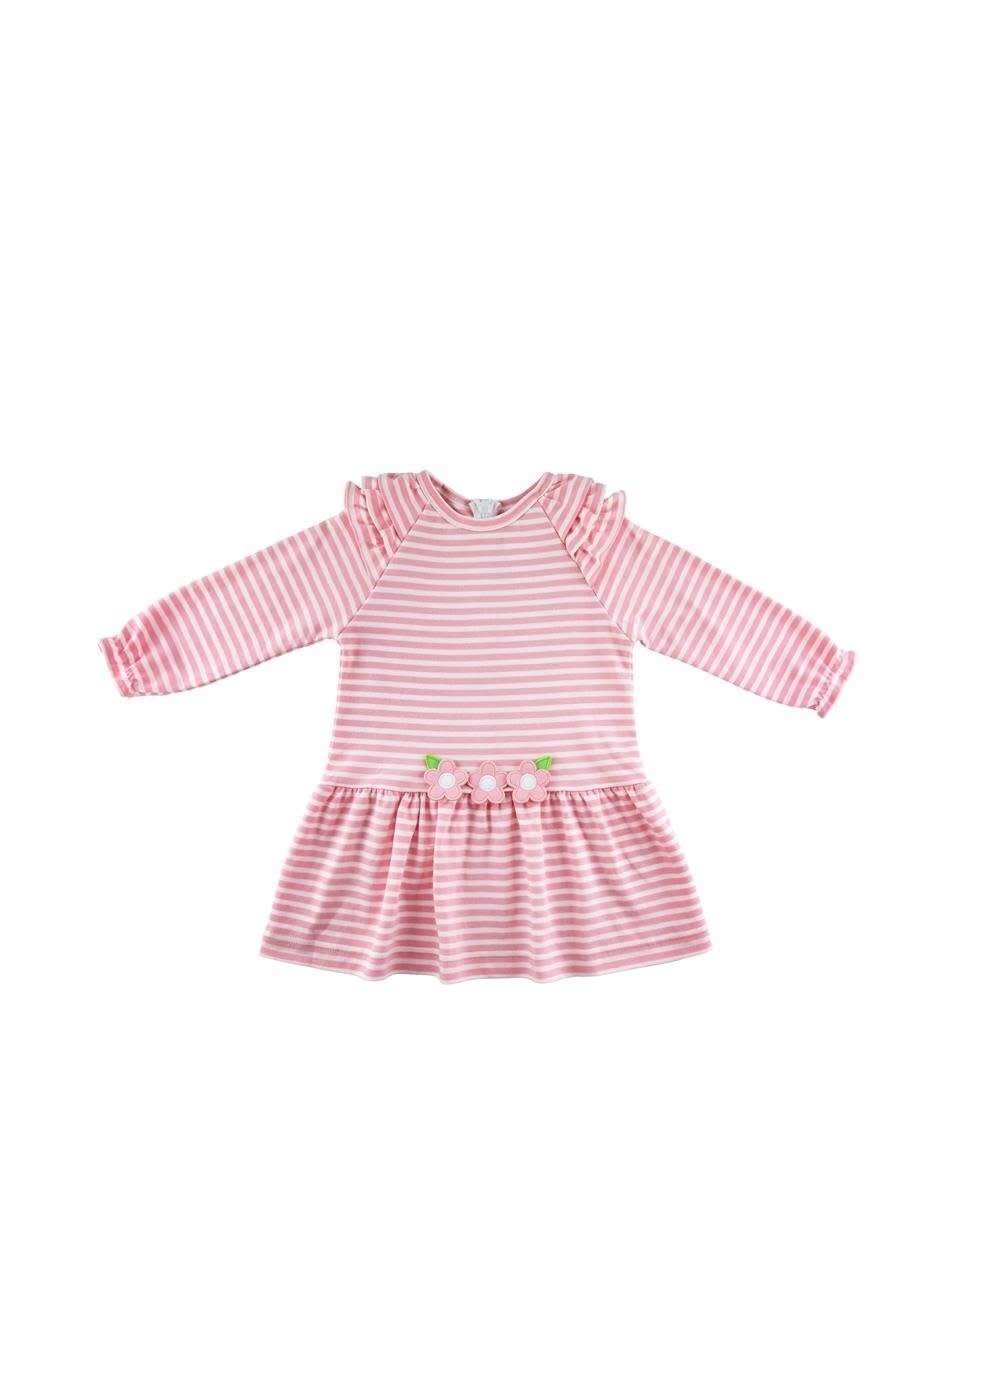 Florence Eiseman Pink Stripe Dress with Flowers